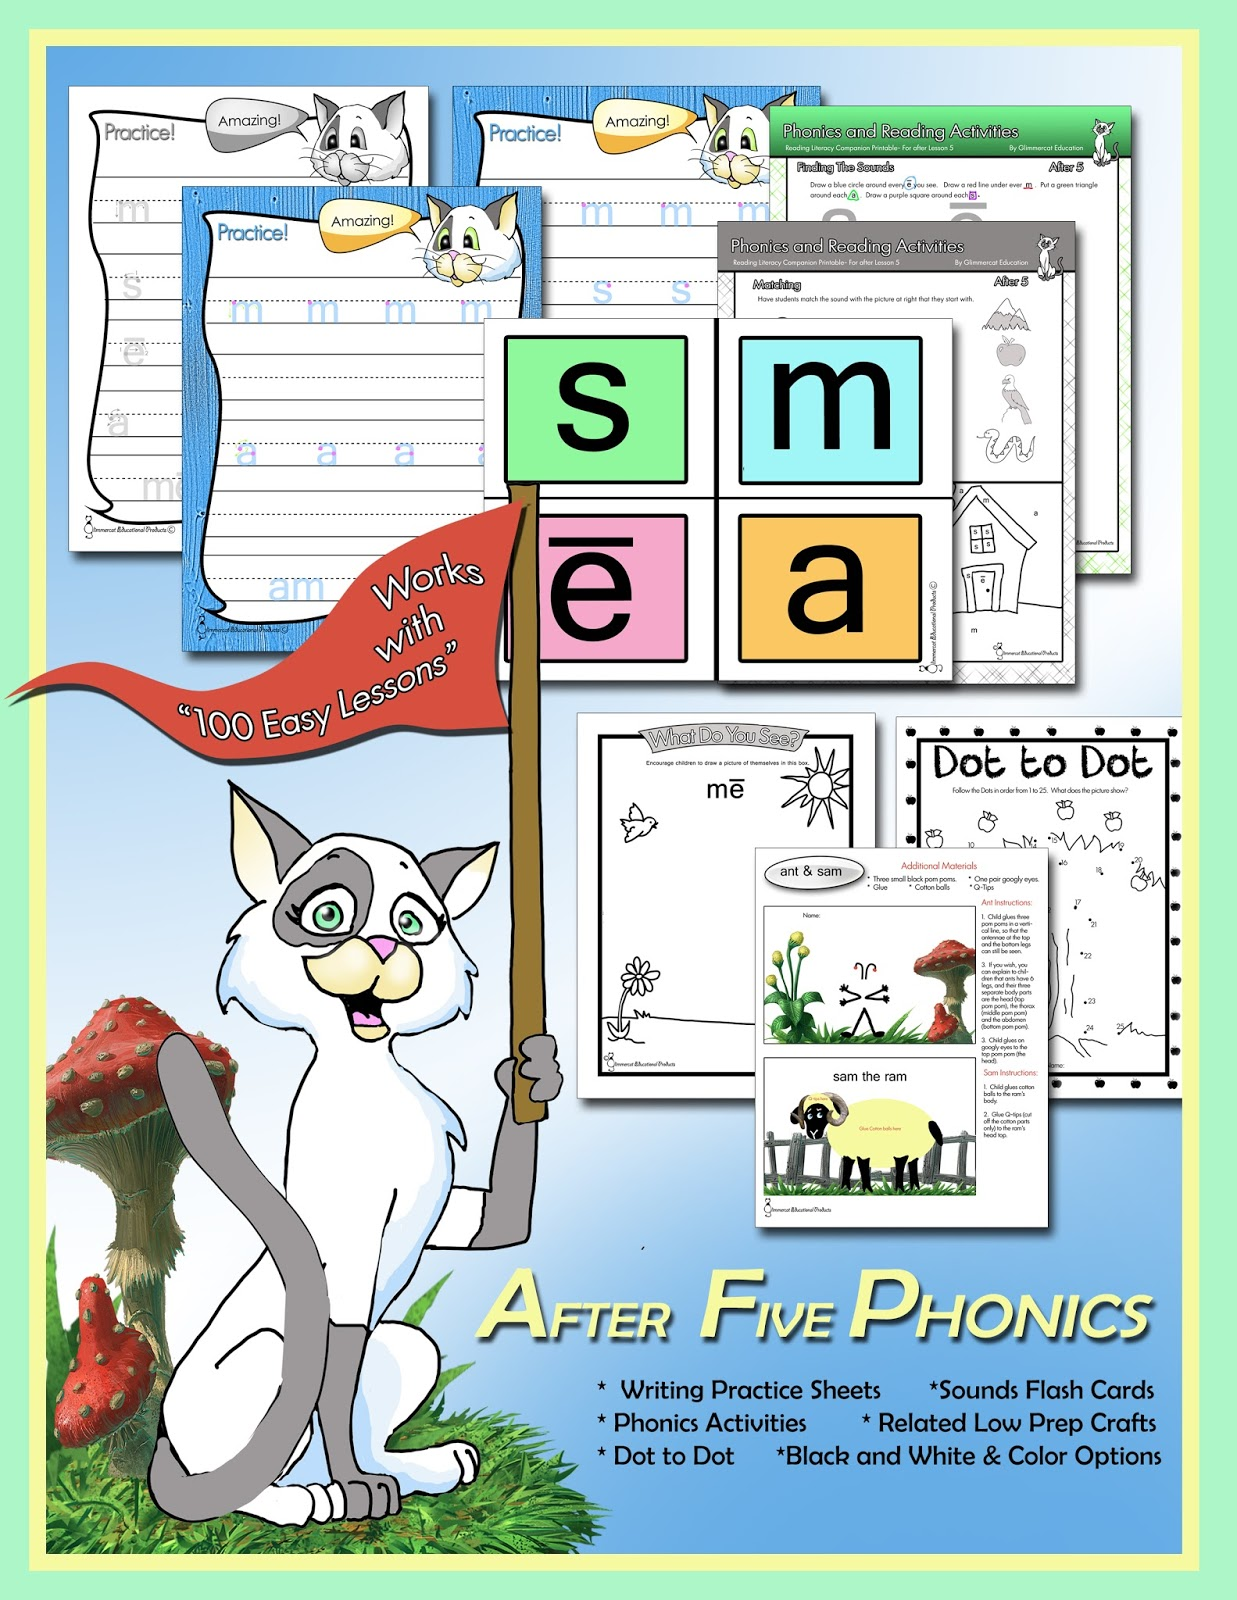 Printables Teach Your Child To Read In 100 Easy Lessons Worksheets glimmercat more printables for teach your child to read in 100 most children should be able do these after completing the first five lessons of how 1